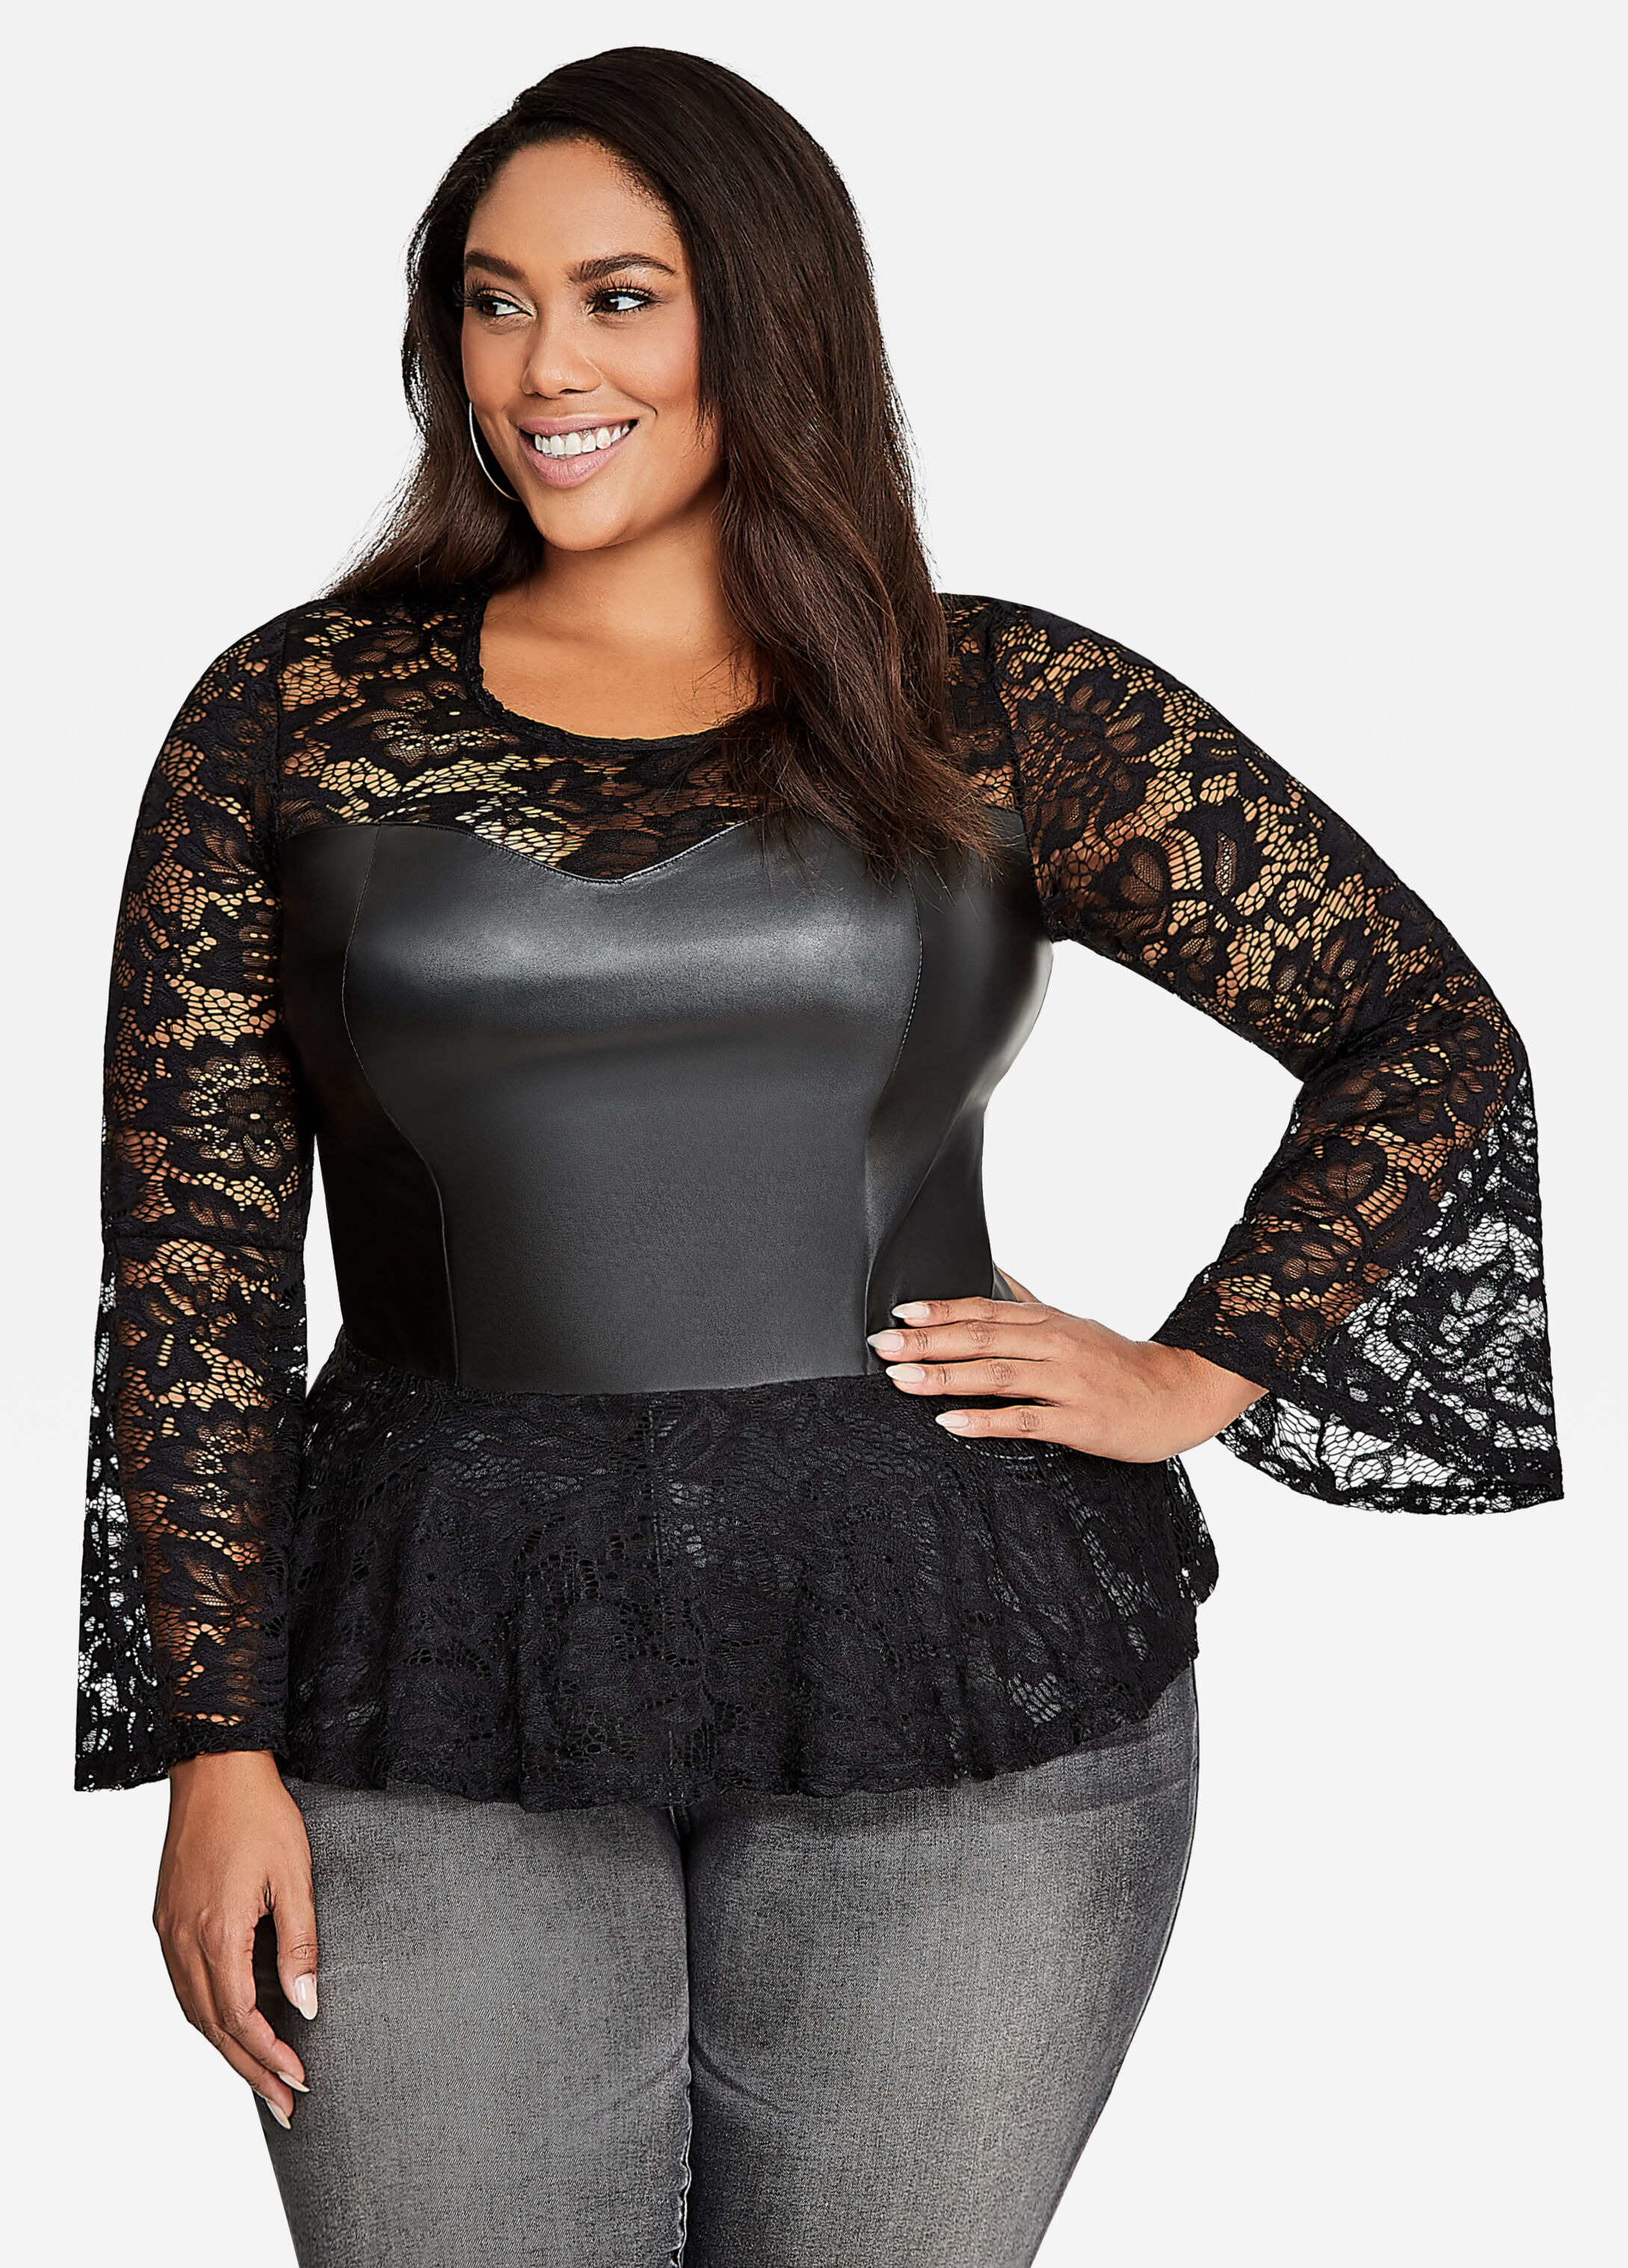 plus size tops for women | sizes 12 - 36 | ashley stewart